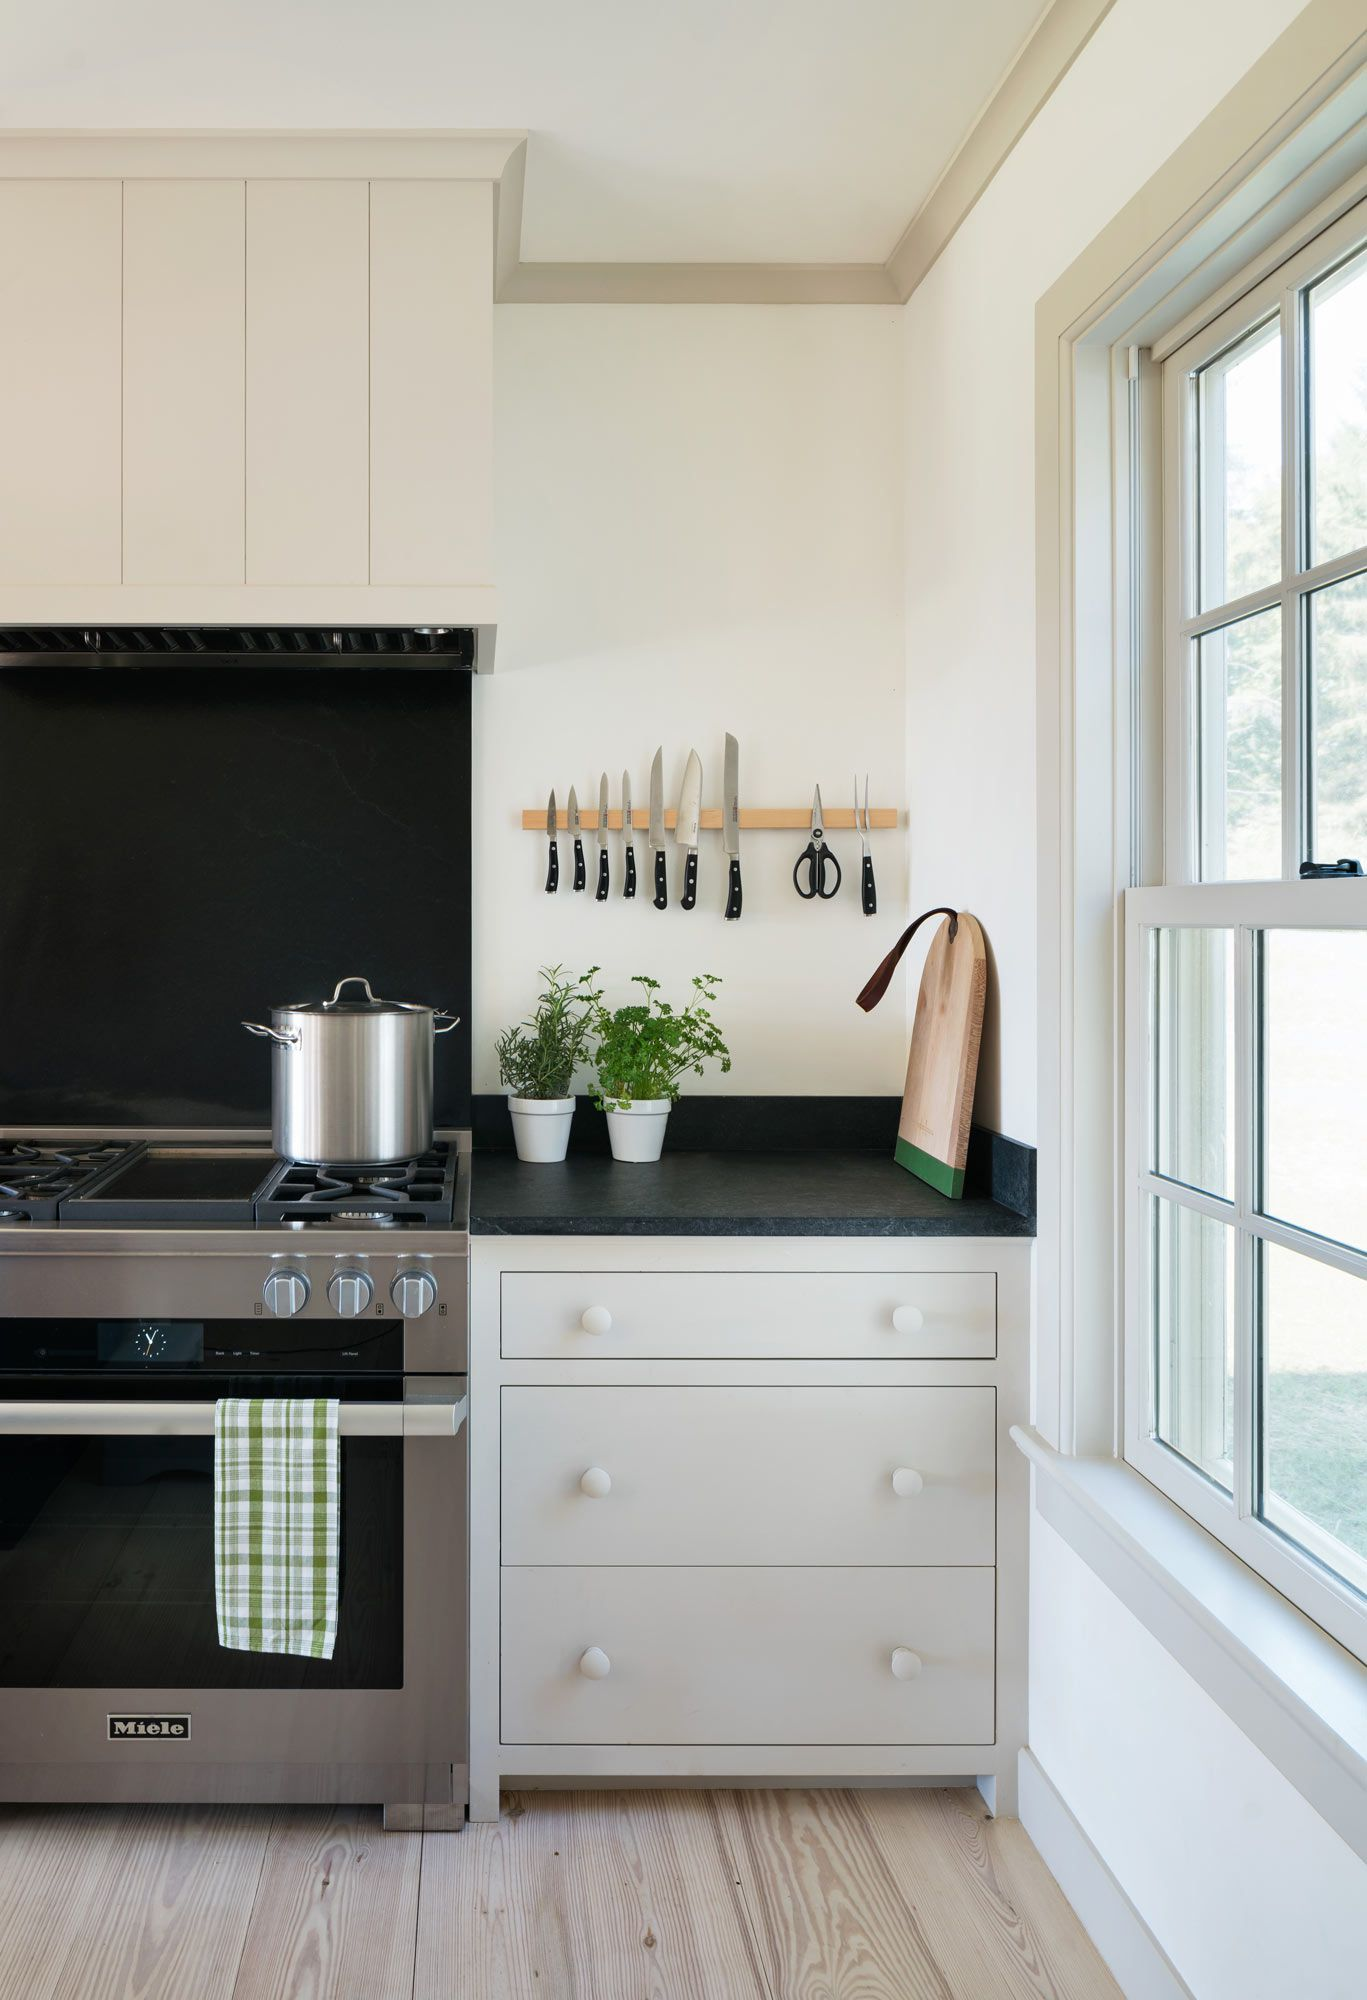 Classic white and black kitchen design with stainless steel ...